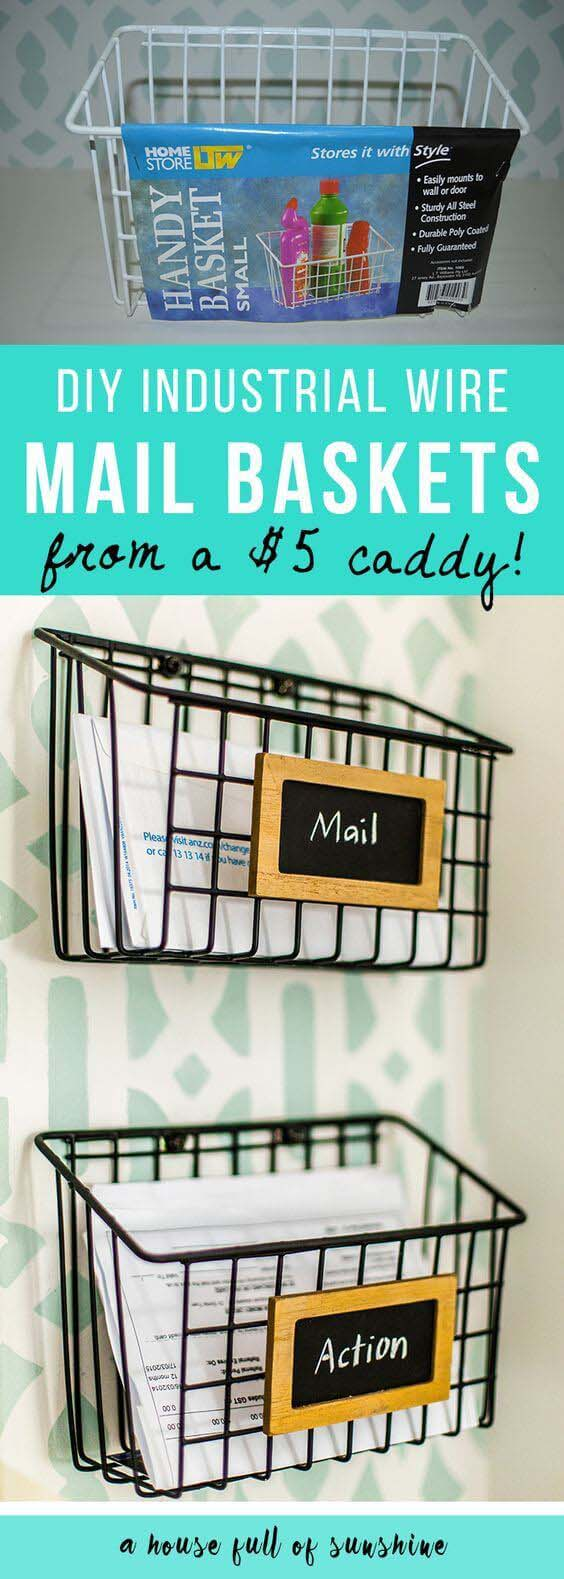 By the Door Mail Baskets #dollarstore #storage #organization #decorhomeideas